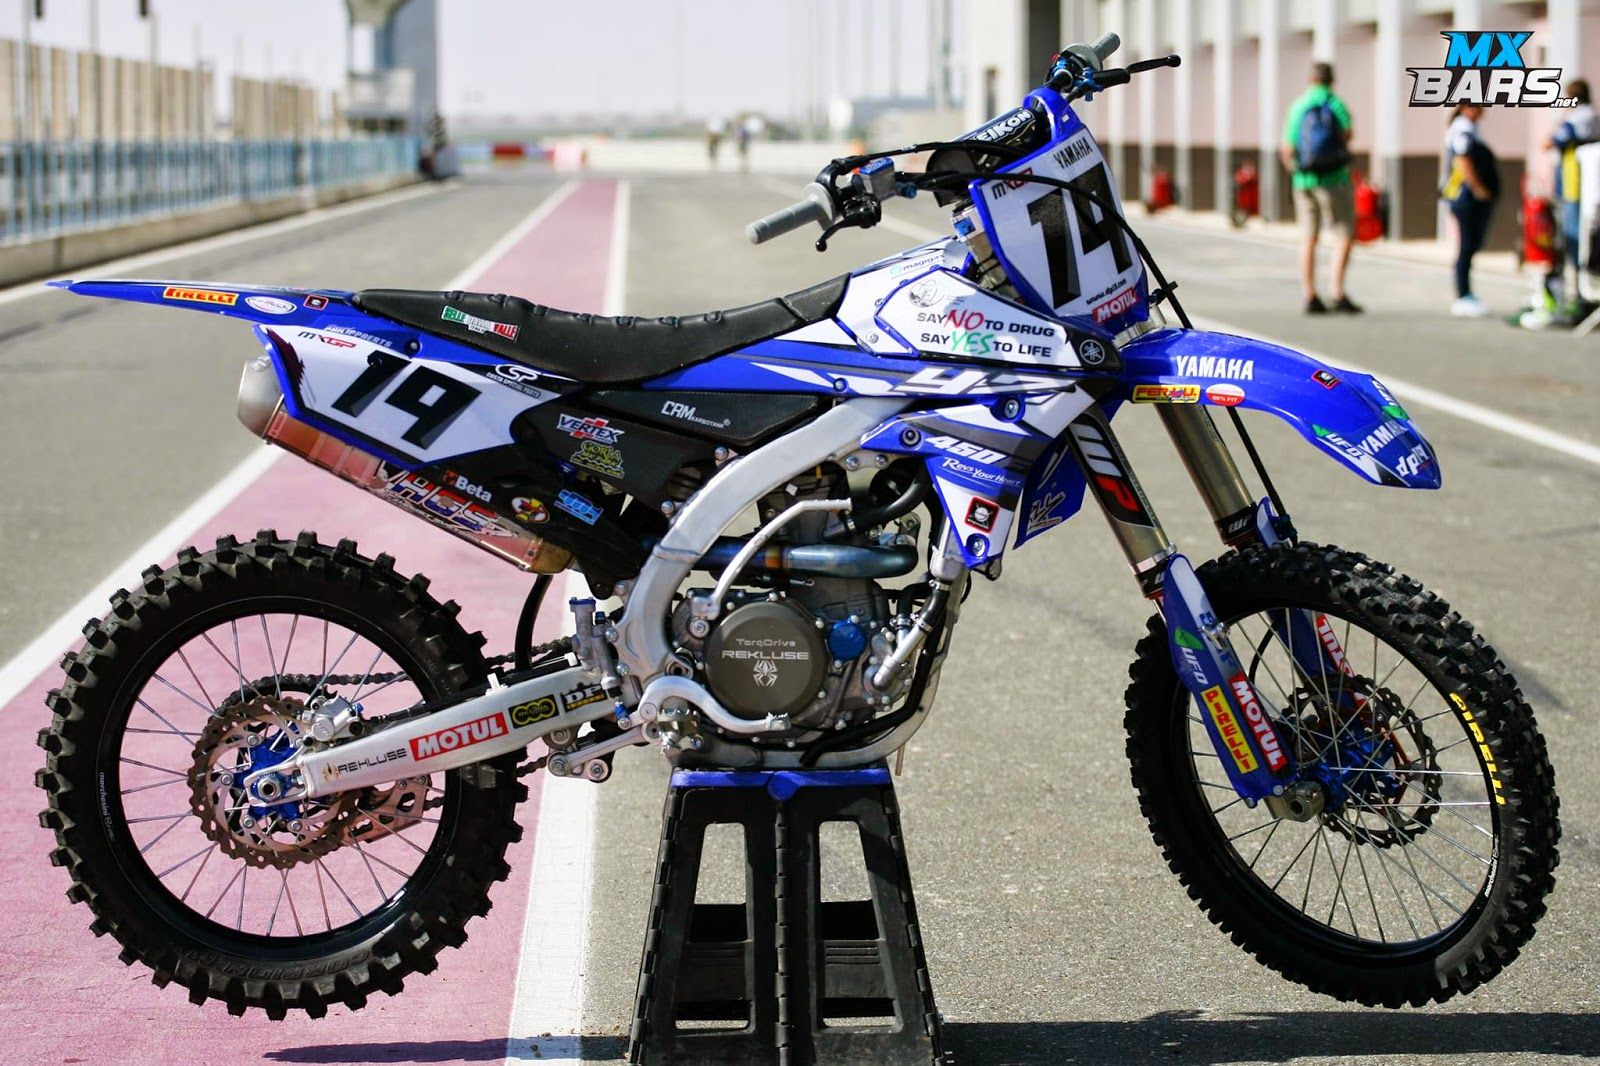 Yamaha yz 450f team dp19 racing yamaha 2015 yamaha for Yamaha racing team